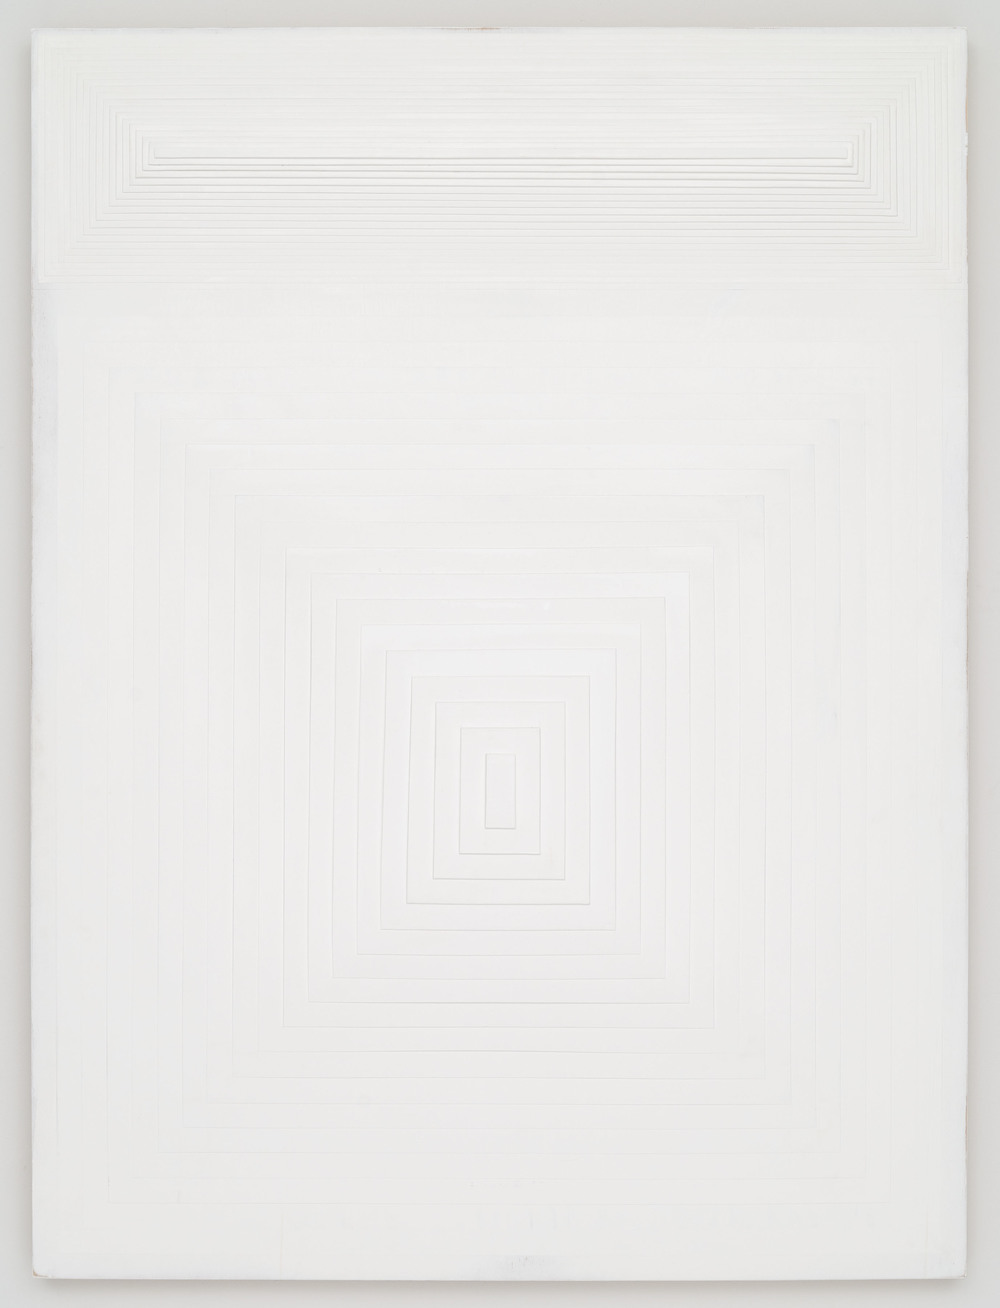 tomb  48 inches x 36 inches  gesso on panel  2014